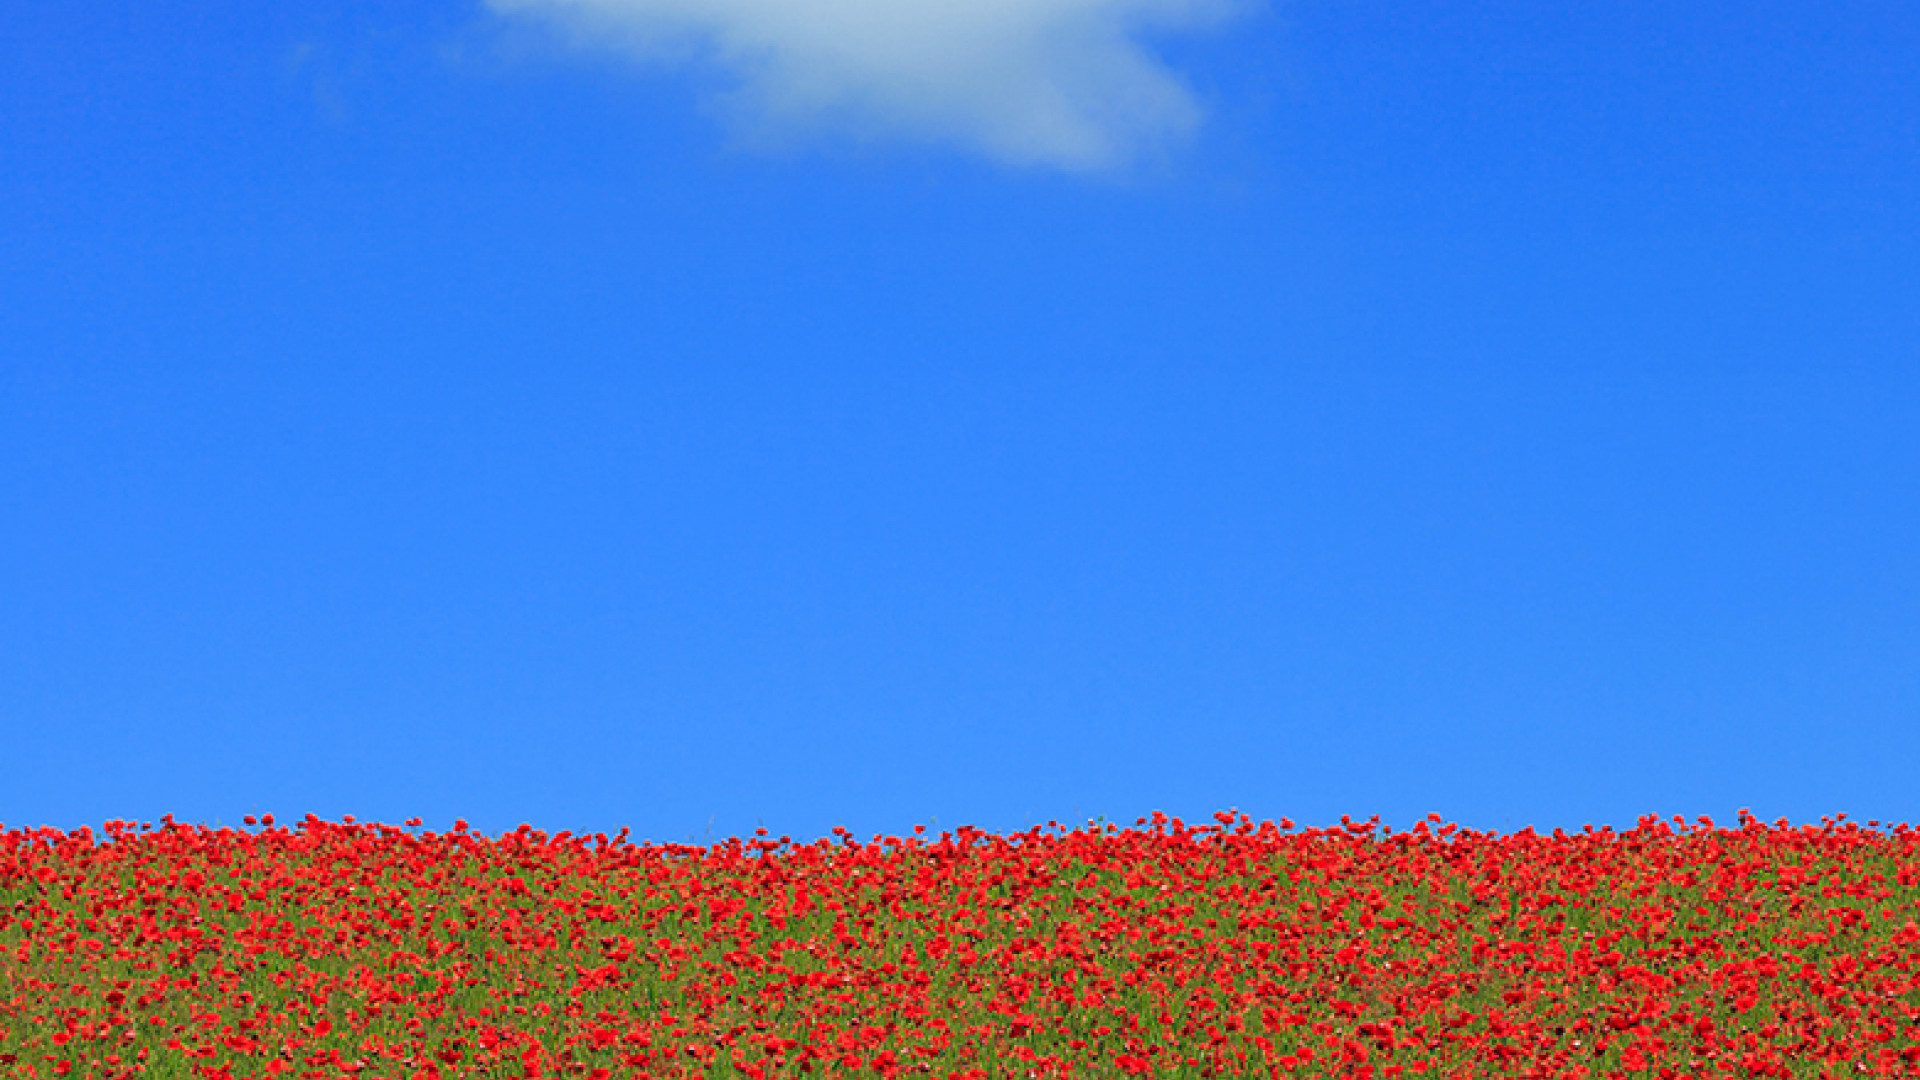 Copy-of-Richard-Tohmas,-Poppies-and-White-Cloud,-Commended,-Classic-View,2012